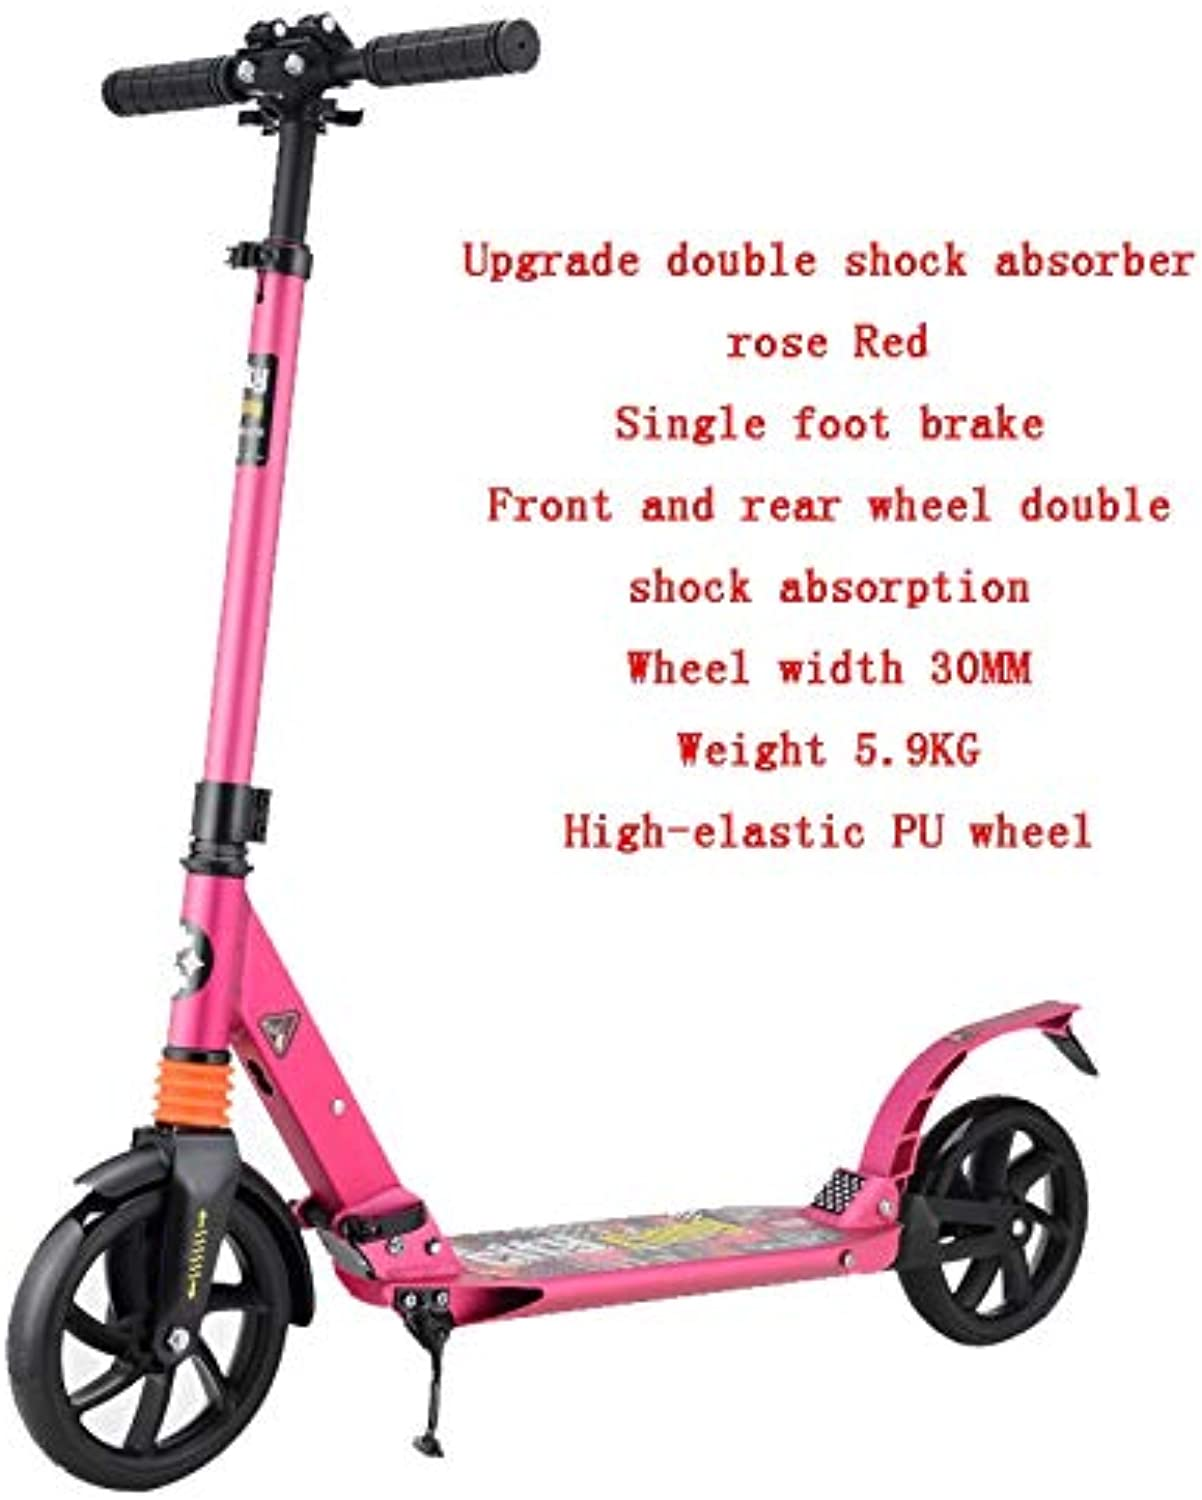 YUMEIGE Kick Scooters Kick Scooter for Adult Teens Adjustable Aluminium Alloy Commuter Scooter Foldable Big Wheels Smooth Fast Ride Available (color   Upgrade Double Shock Absorber Red)